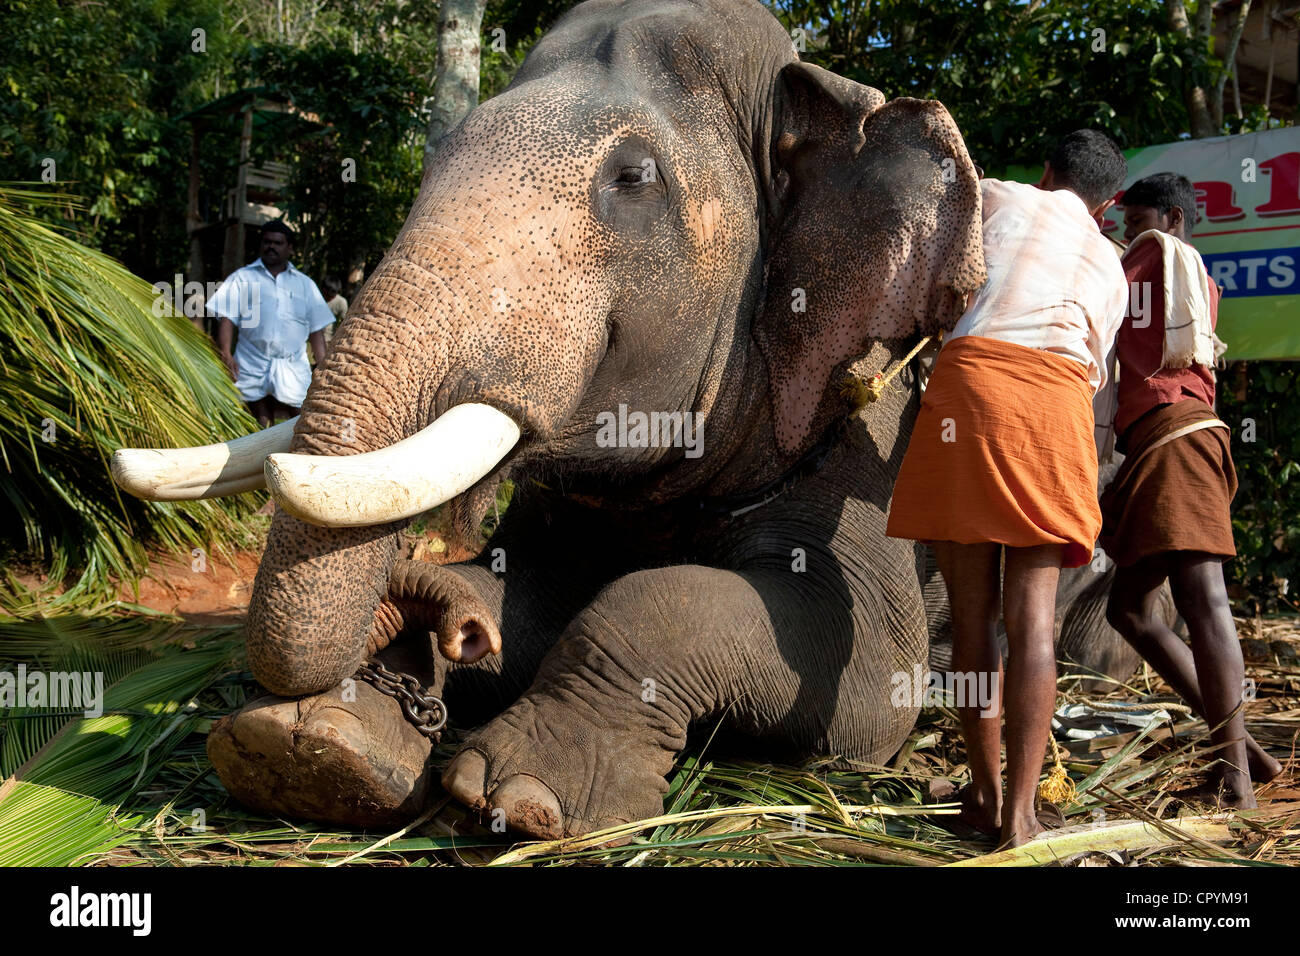 India, Kerala State, Periyar, elephant used for tourist rides - Stock Image